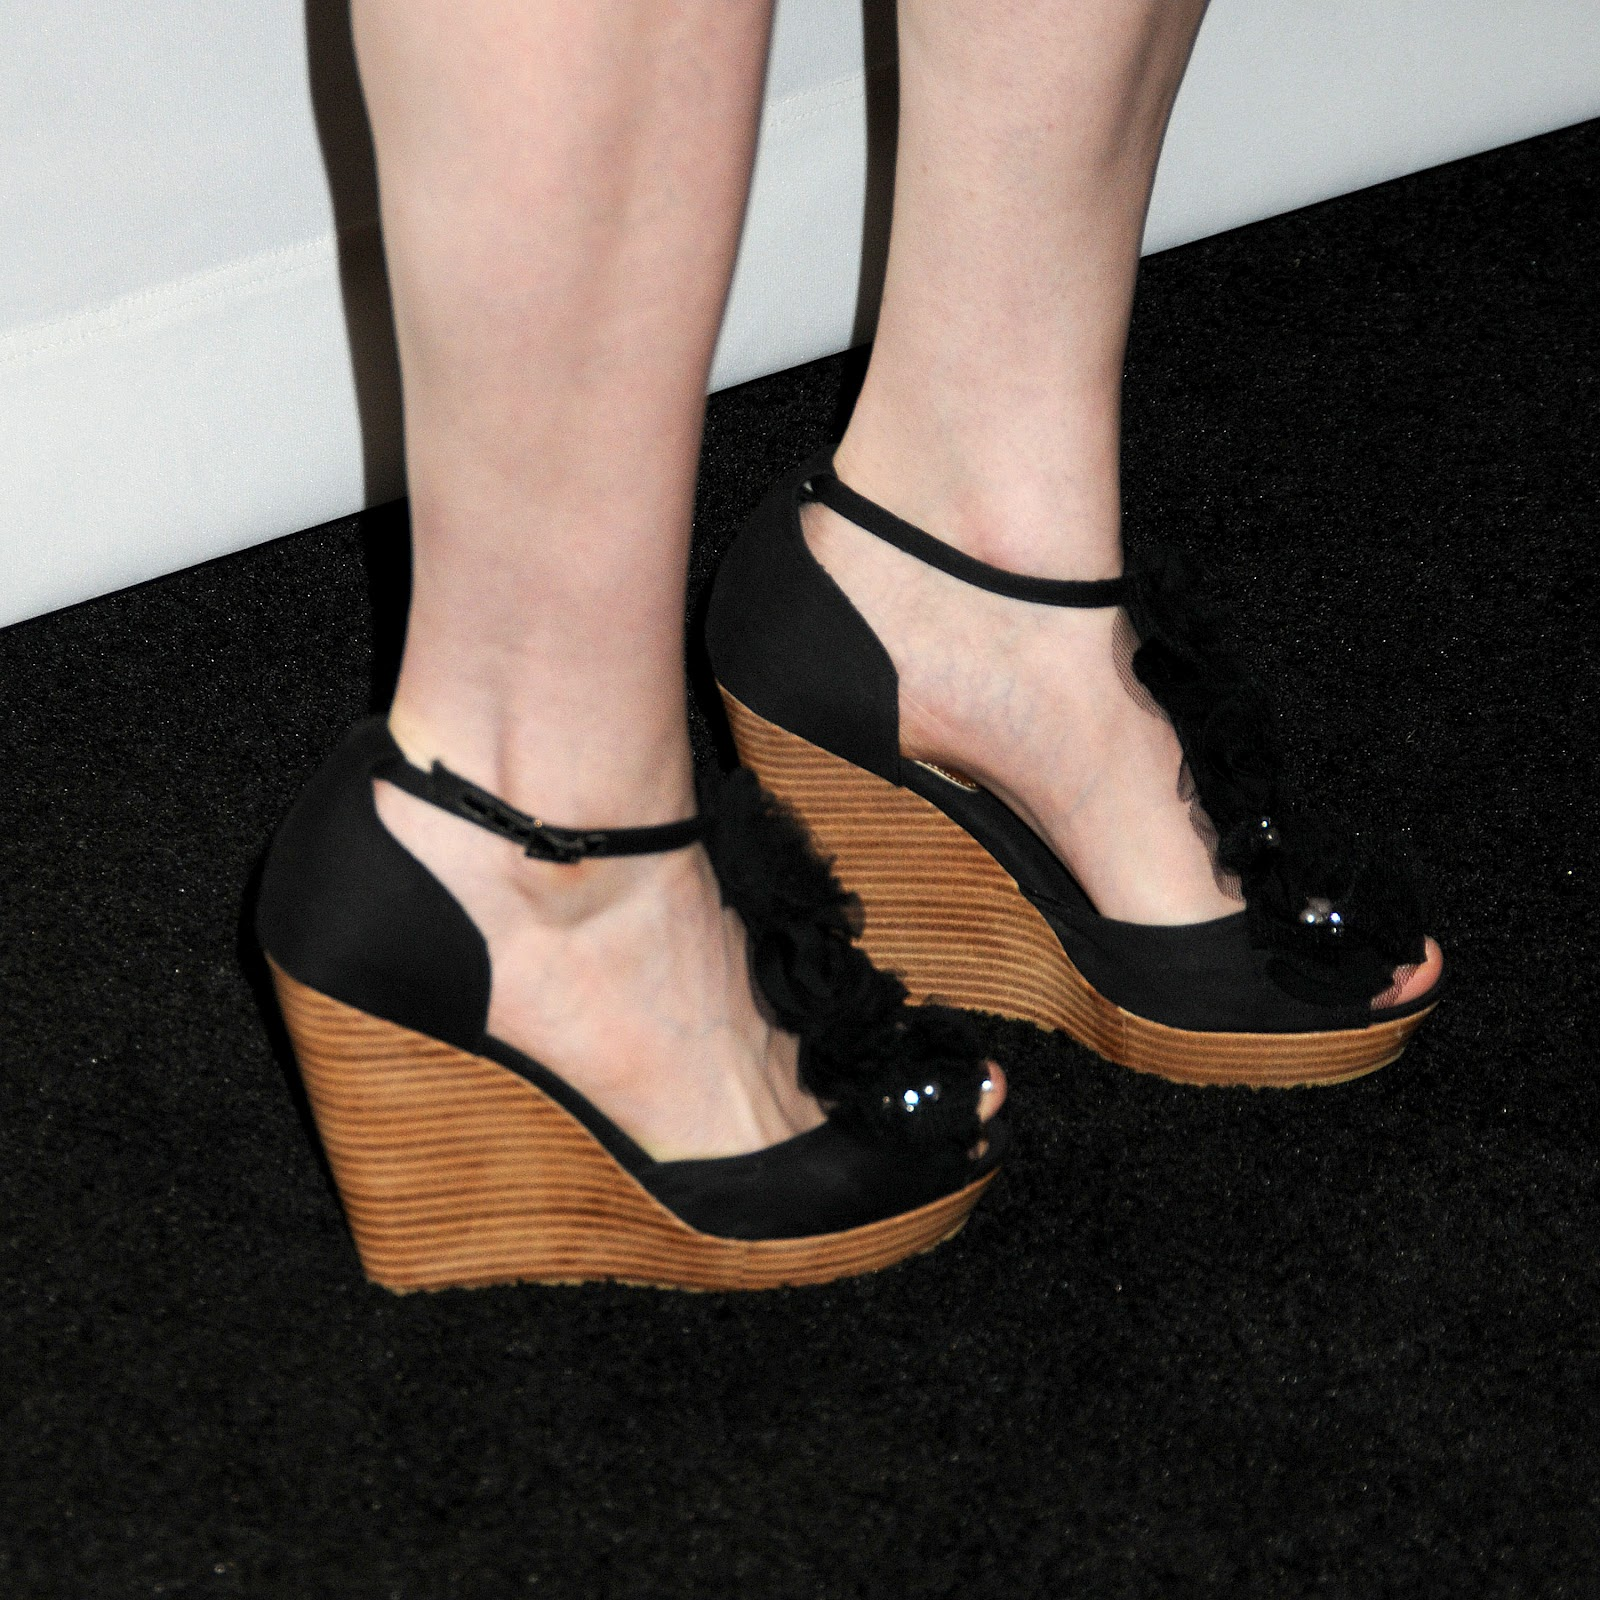 Can not Emily deschanel naked feet your idea